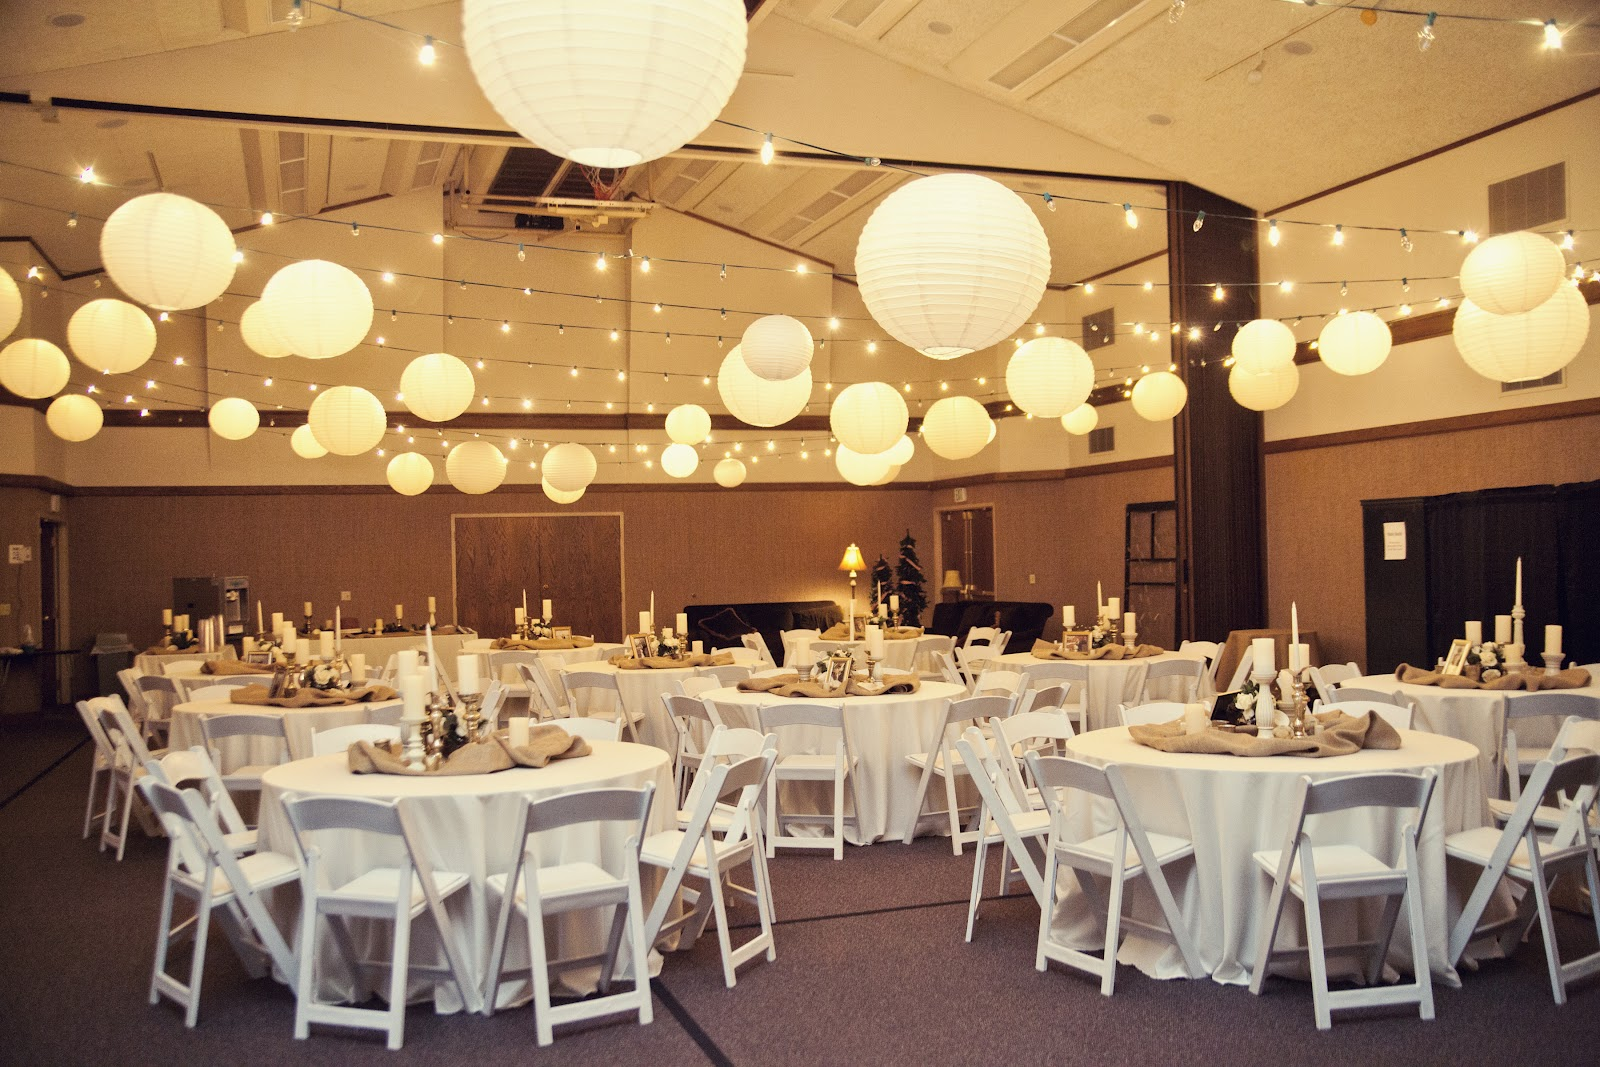 Beehive art salon wedding for Wedding banquet decorations